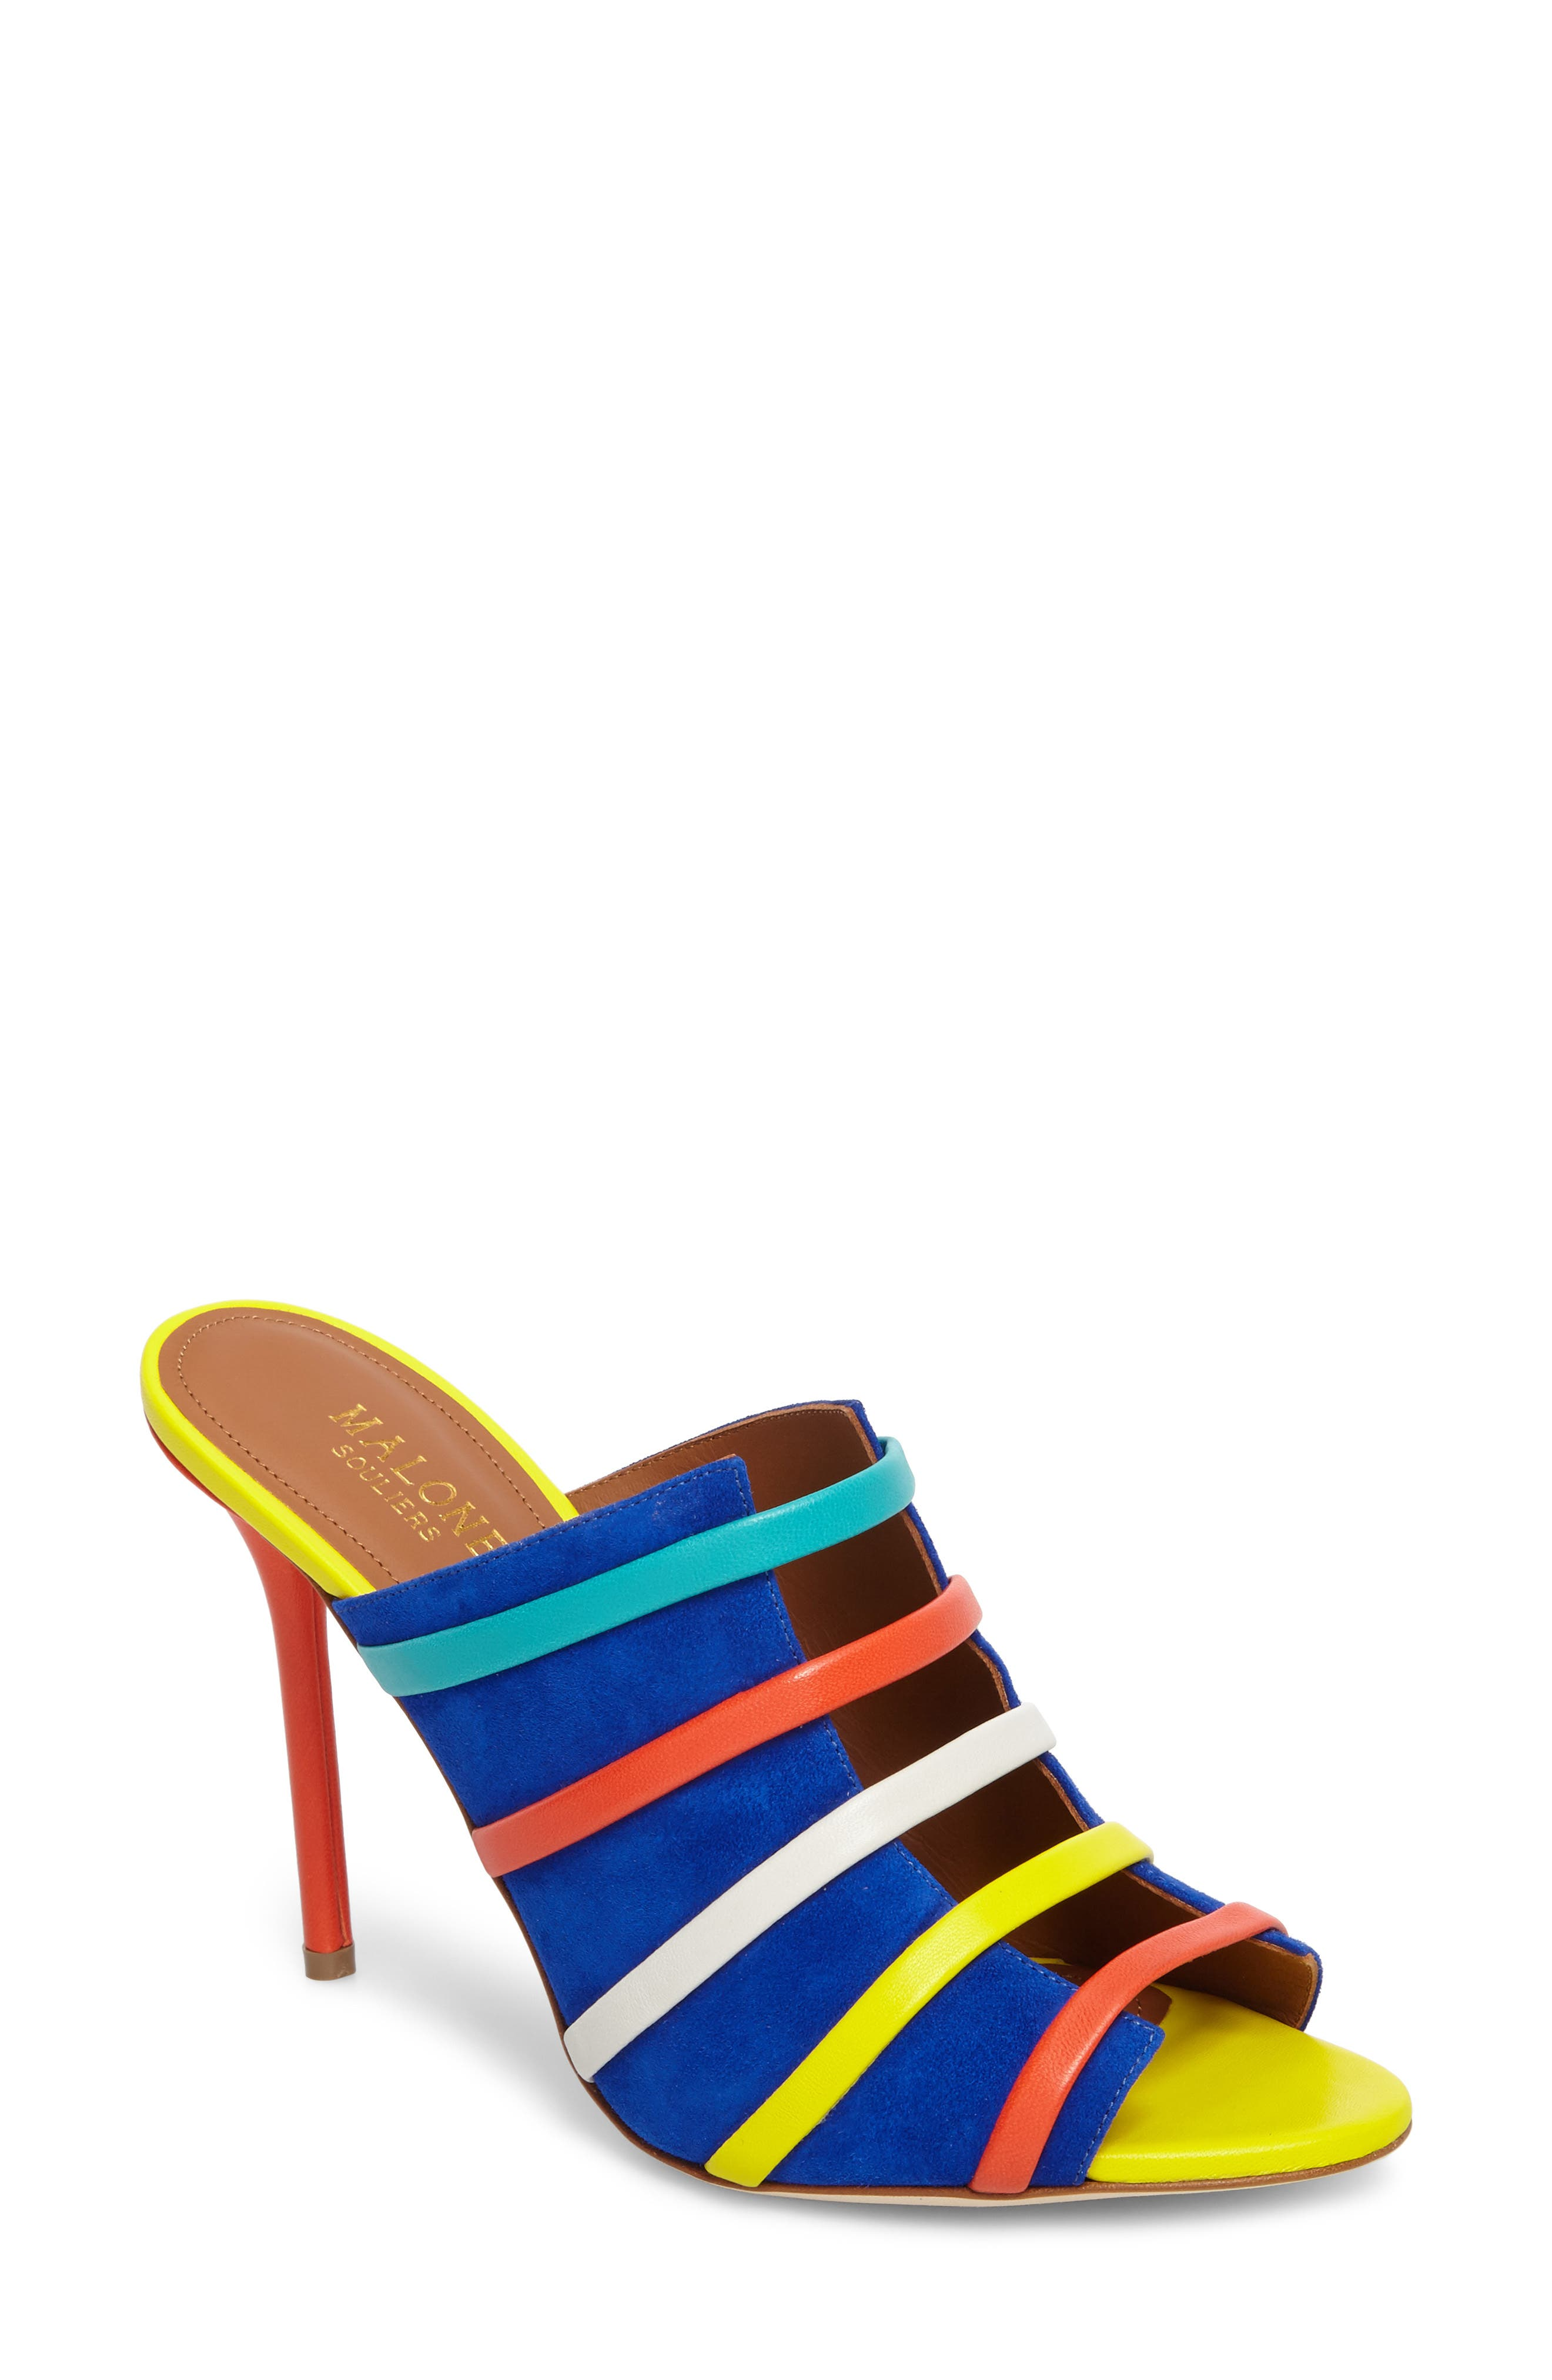 Alternate Image 1 Selected - Malone Souliers Zoe Banded Mule (Women)